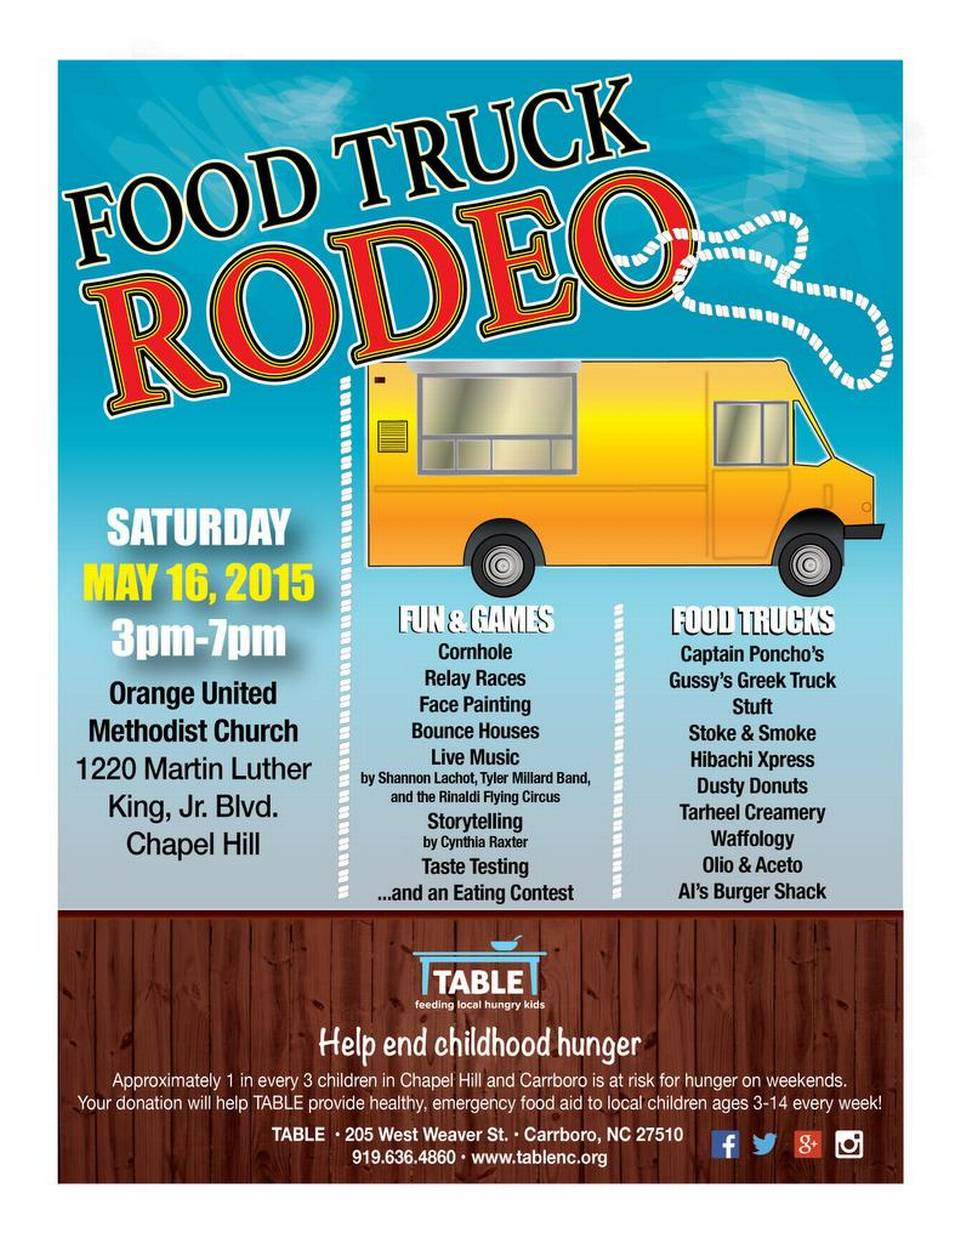 Chapel Hill, NC: Food truck rodeo on May 16 in Chapel Hill